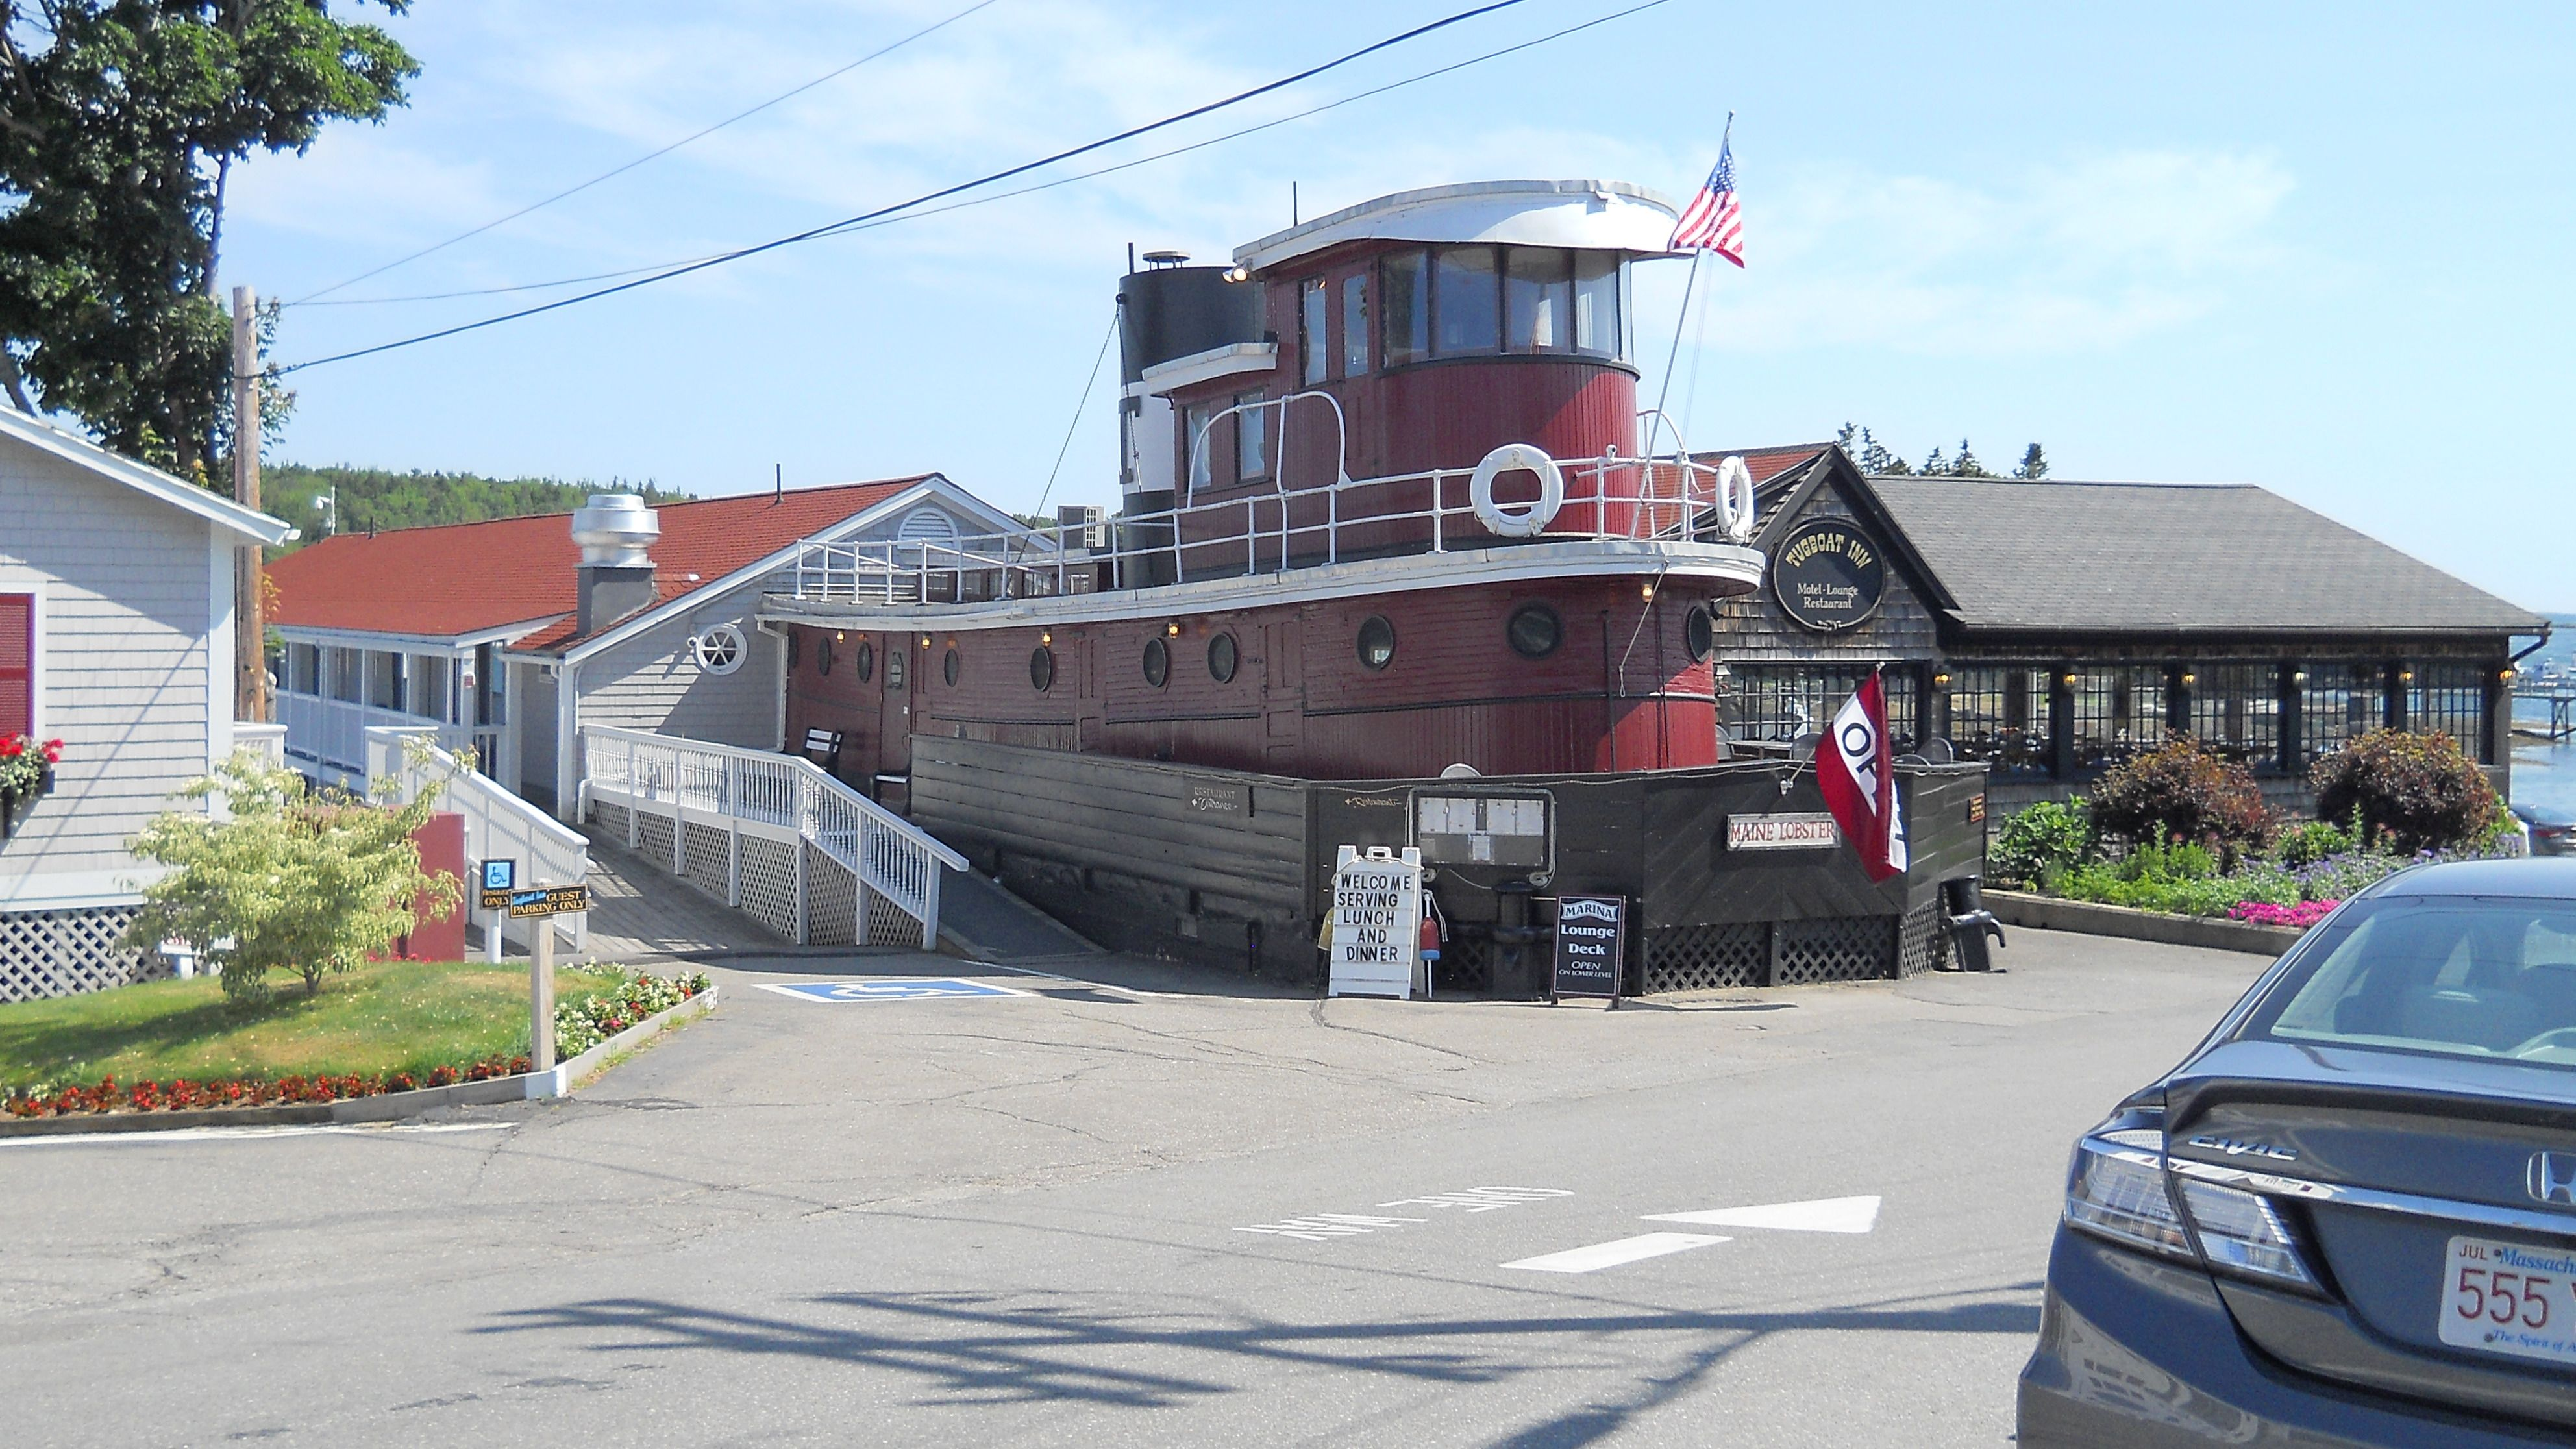 The best place to eat in Maine. The Tugboat Inn Hotel and Restaurant in Boothbay Harbor.